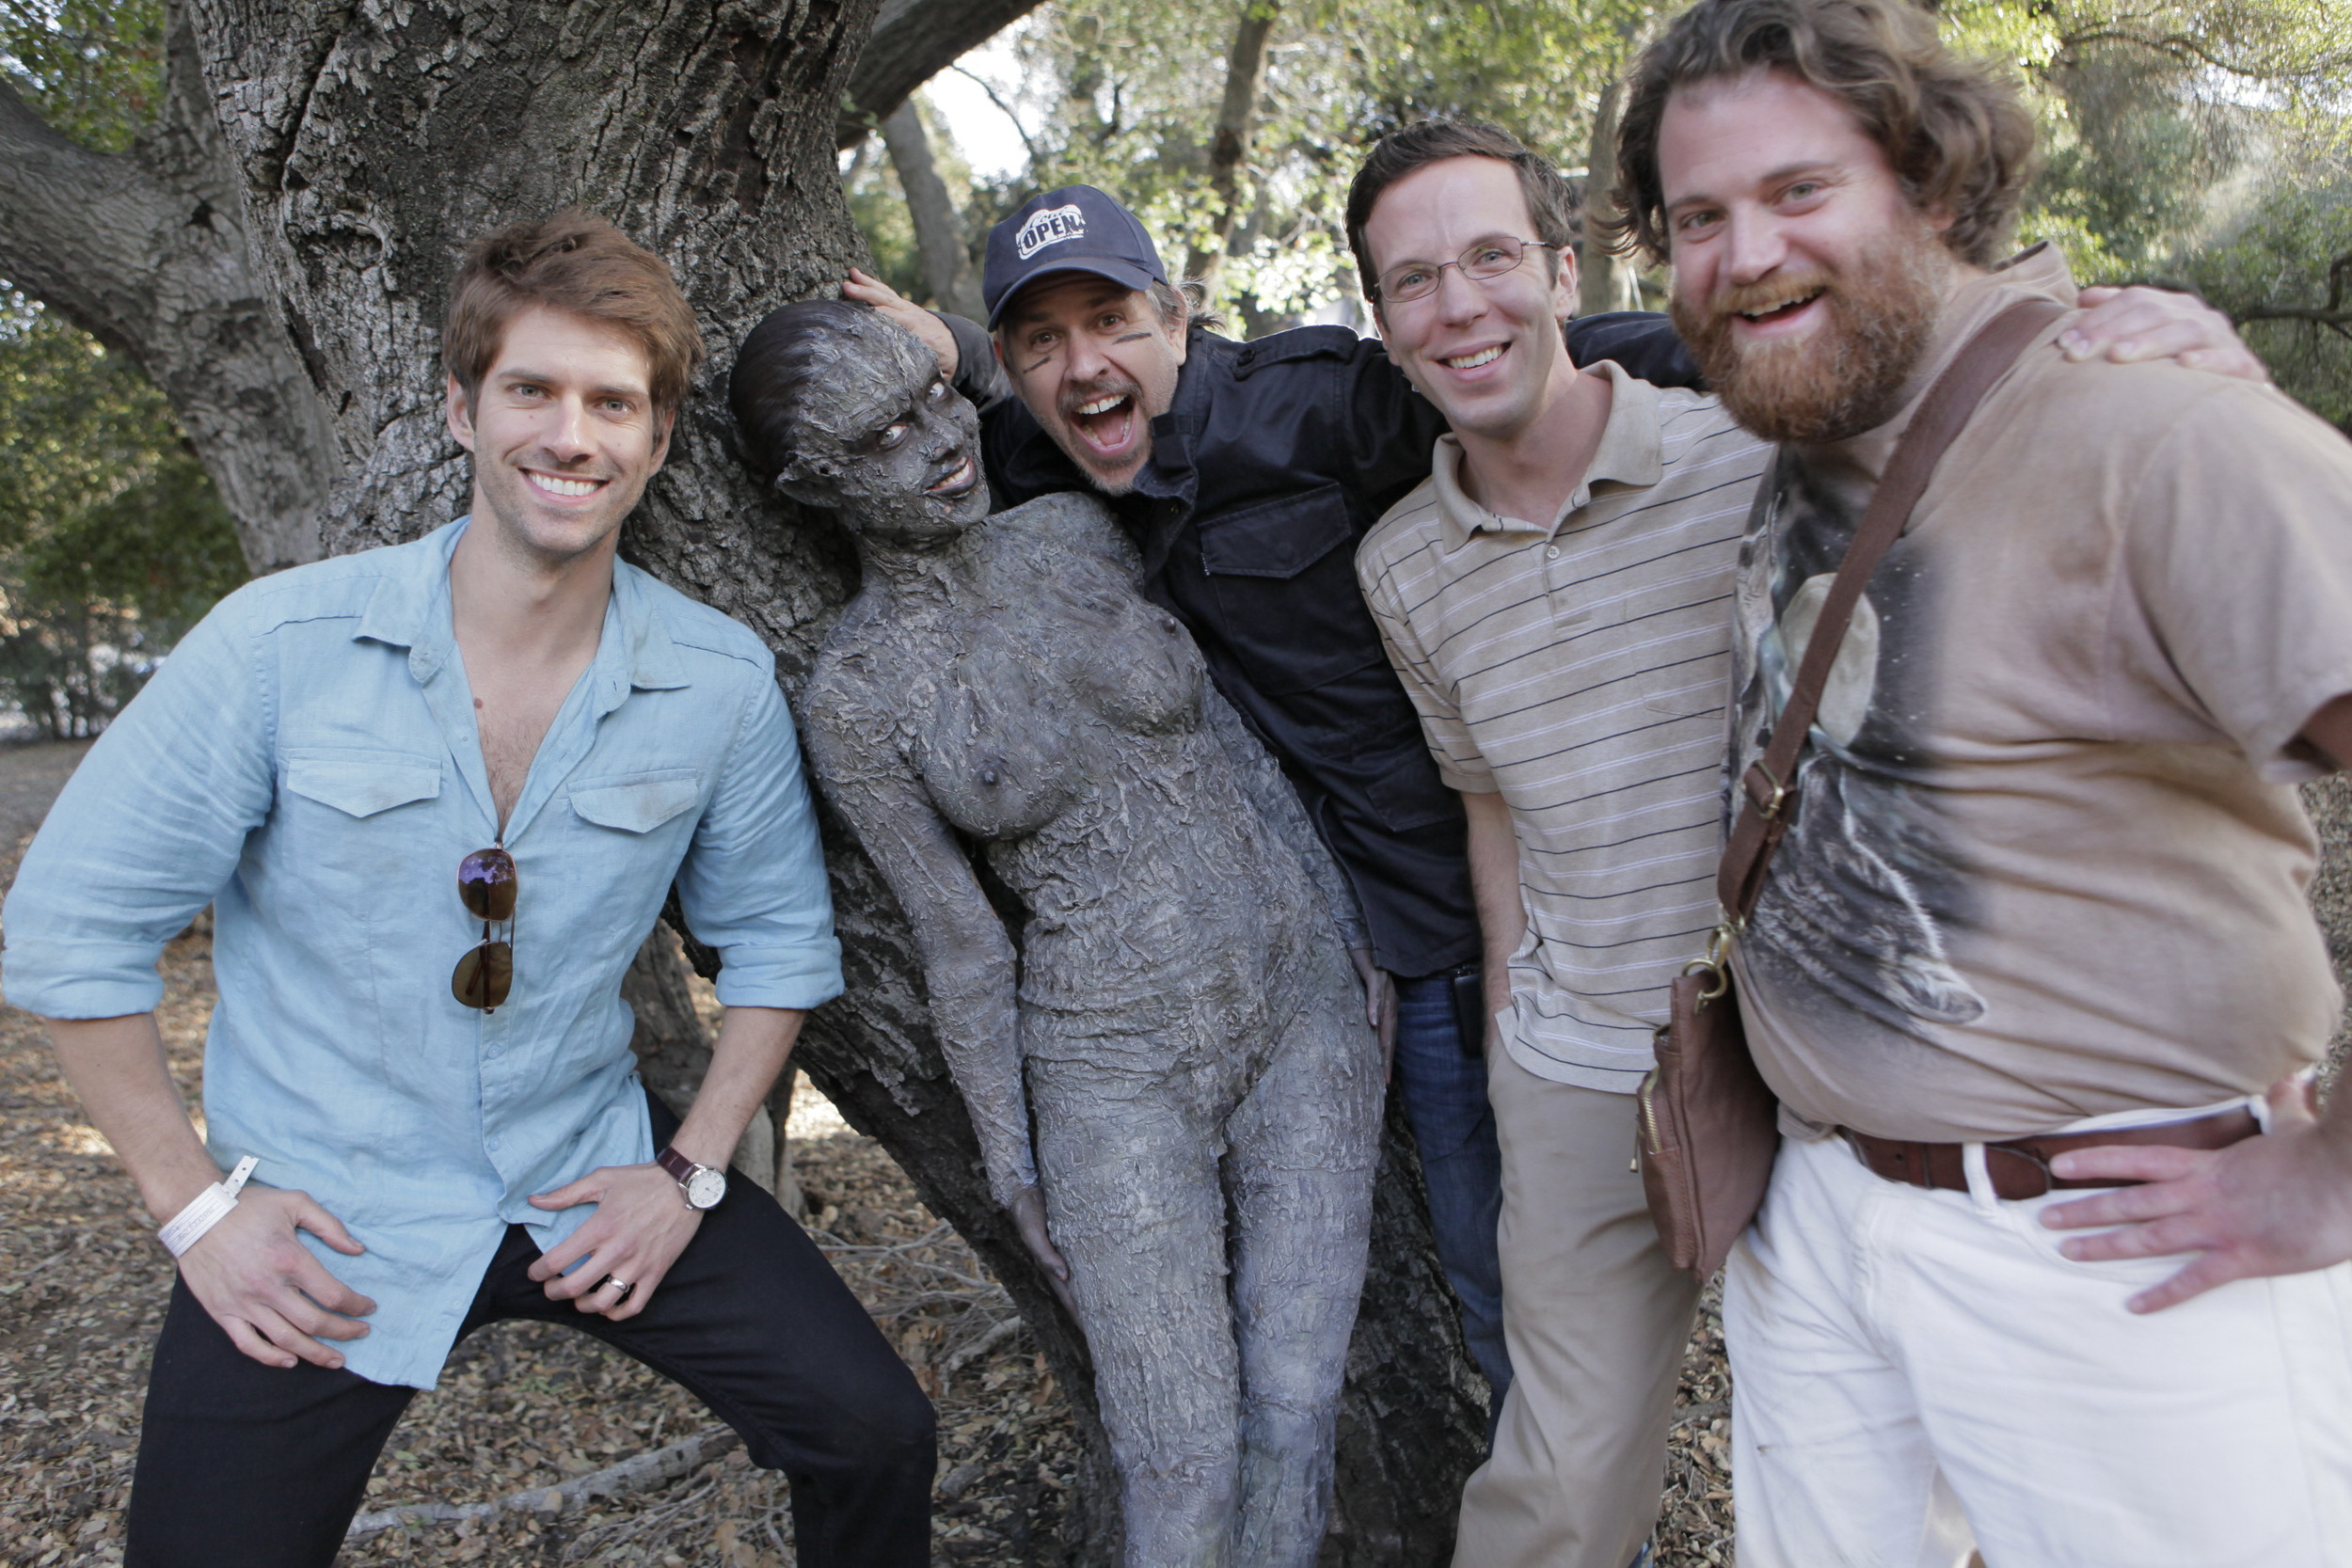 With Ross Nathan, Kayden Kross (the tree), Ben Begley and Herbie Russell on The Hungover Games